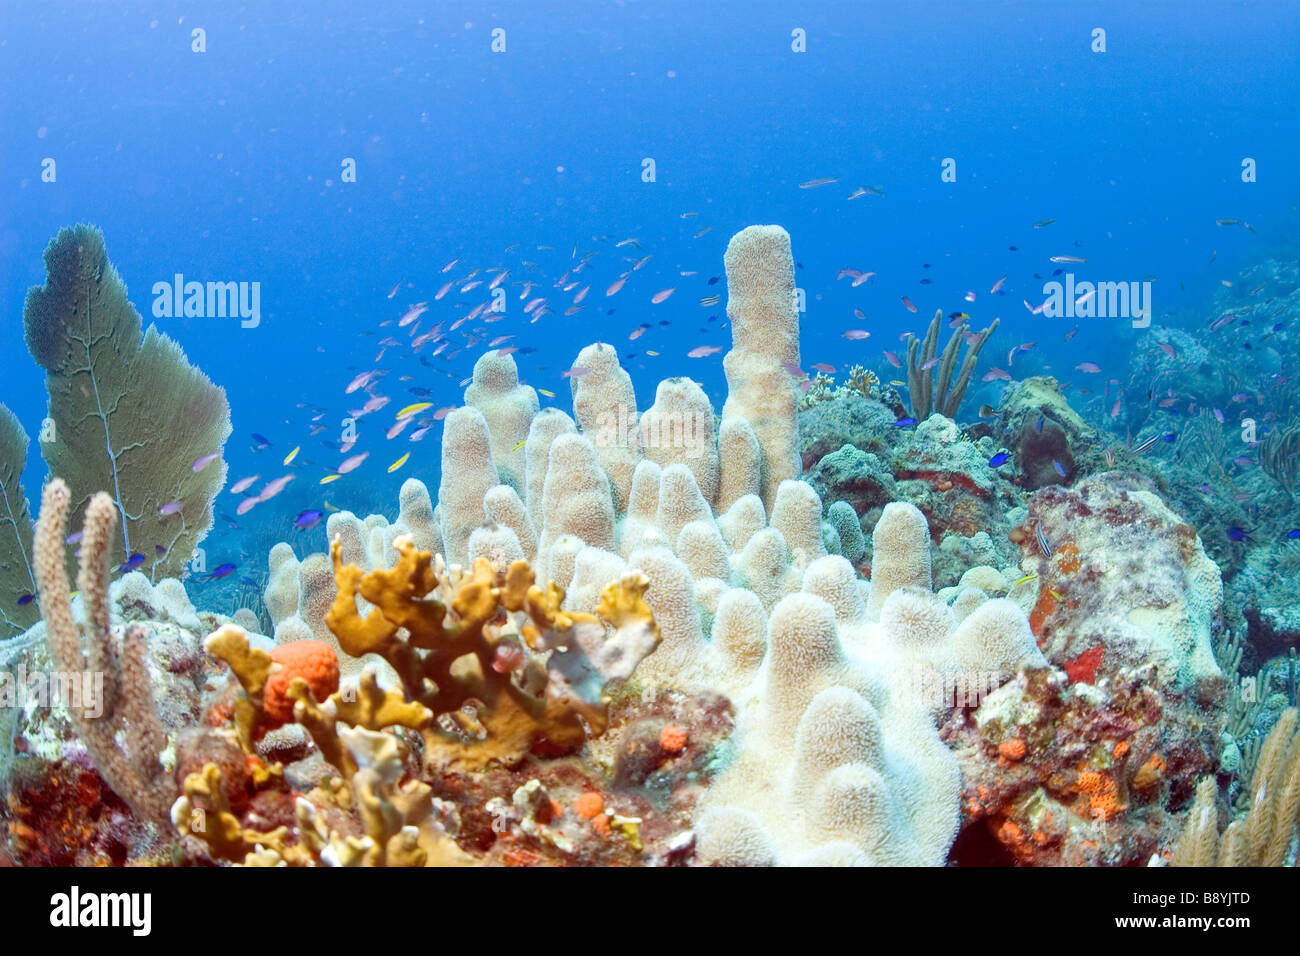 Coral reef in the waters of the Caribbean isle Tortola in the British Virgin Islands - Stock Image